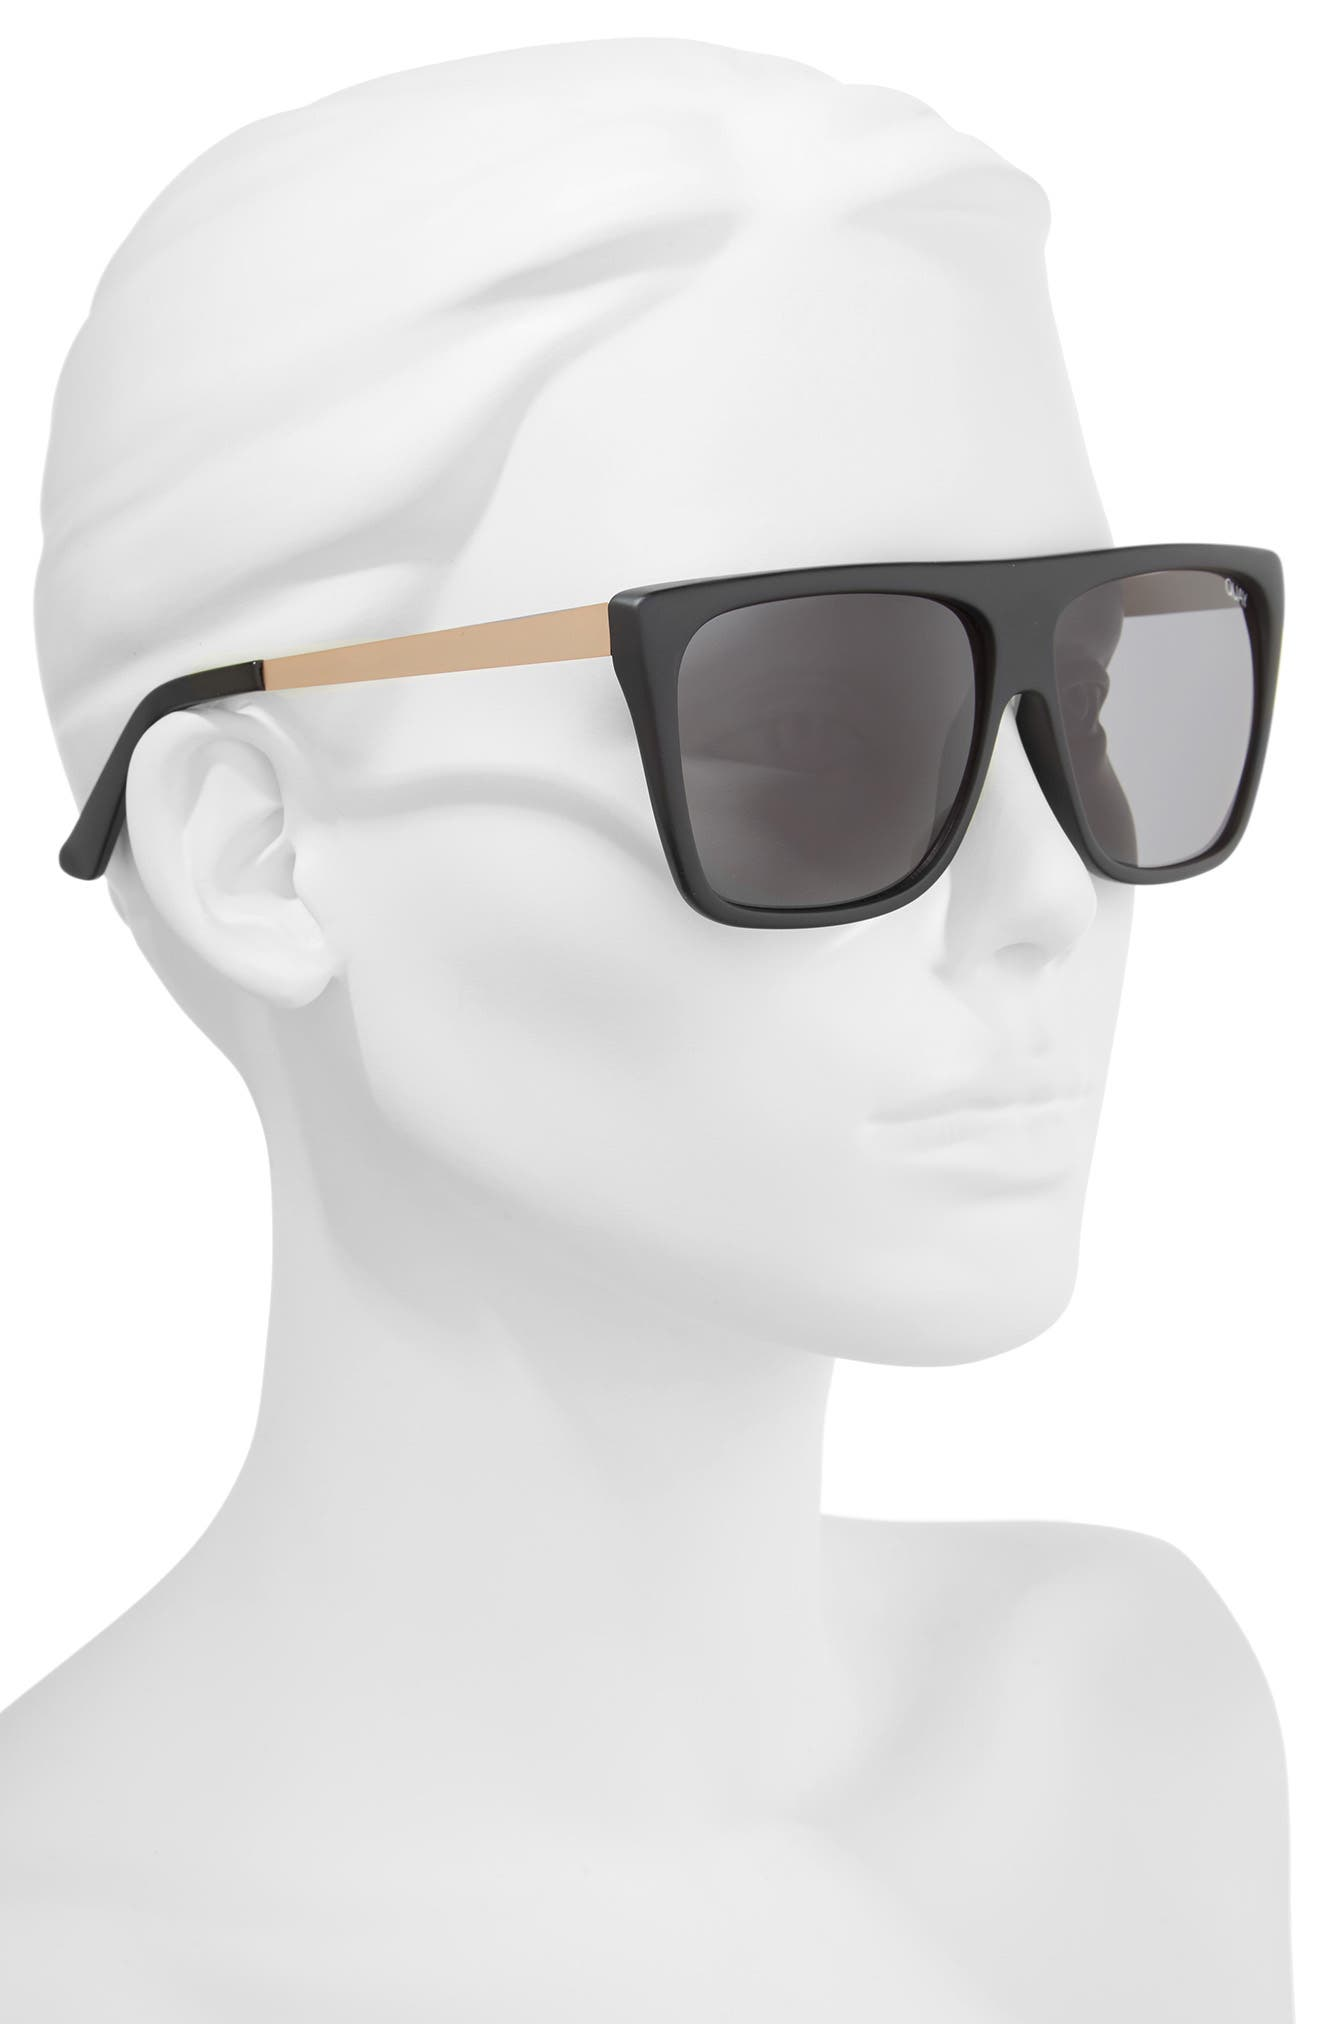 x Desi Perkins On the Low 60mm Square Sunglasses,                             Alternate thumbnail 3, color,                             Black/ Smoke